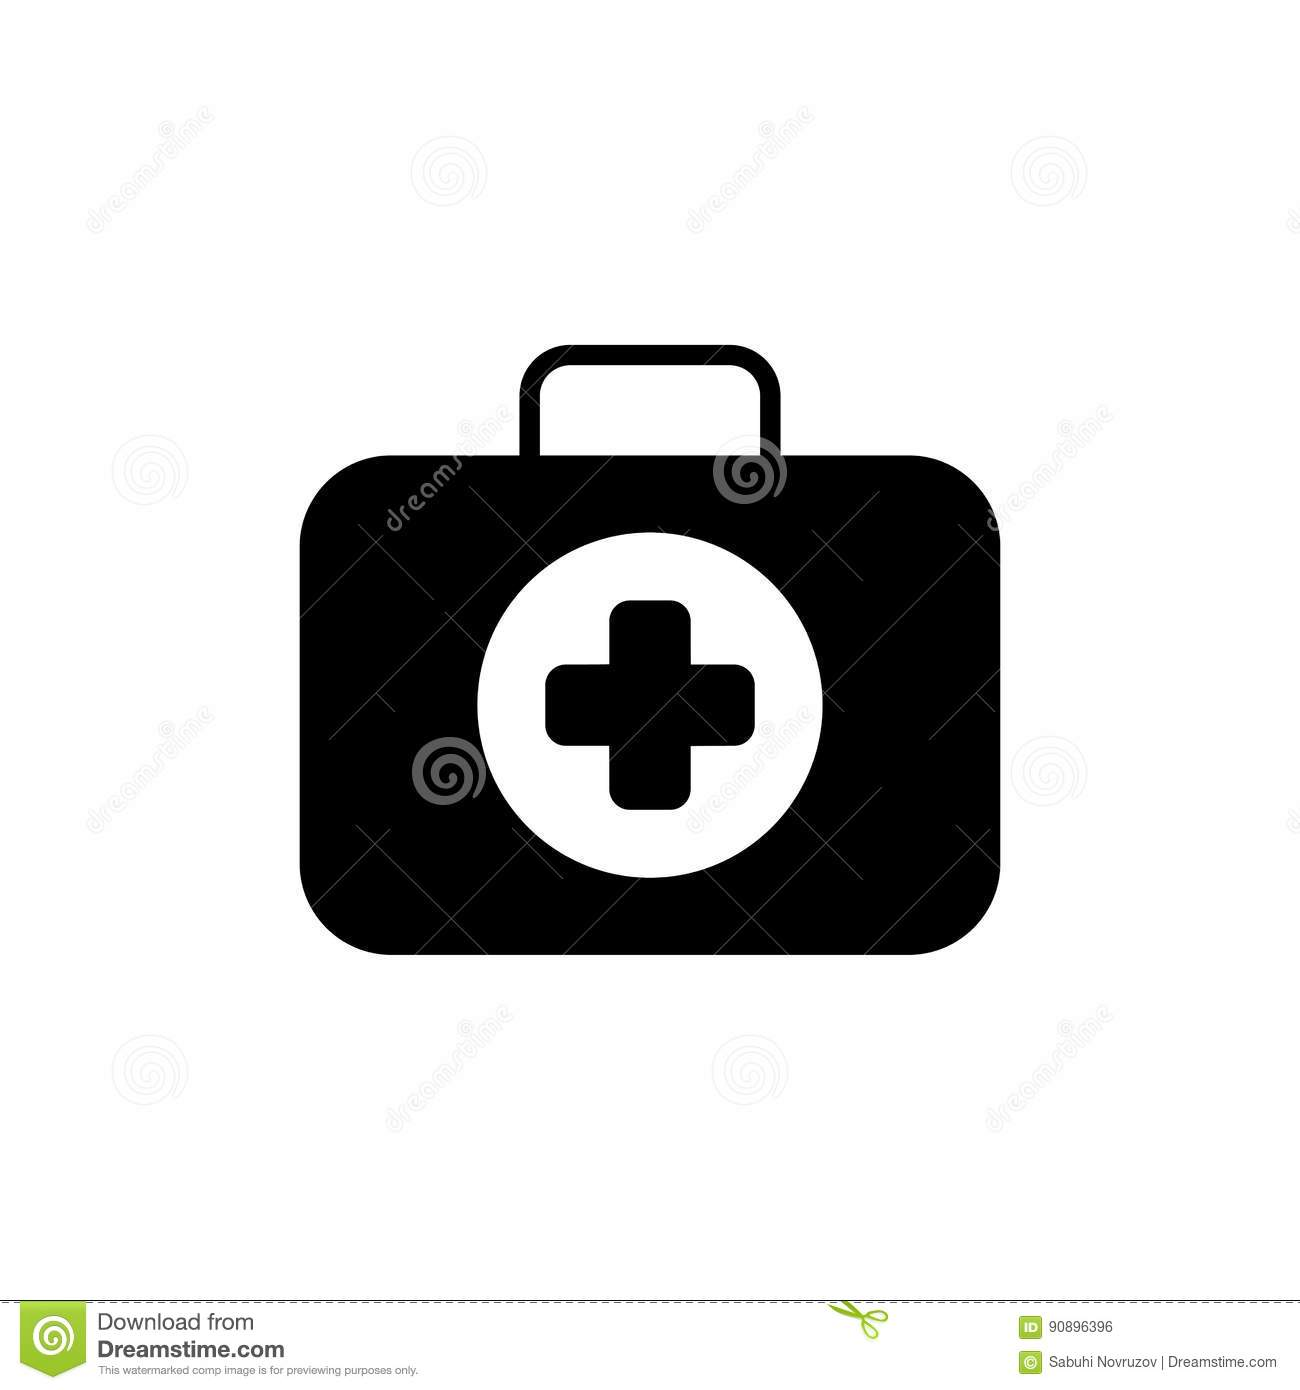 First Aid Kit Symbol and Medical Services Icon. Flat Design. Isolated.